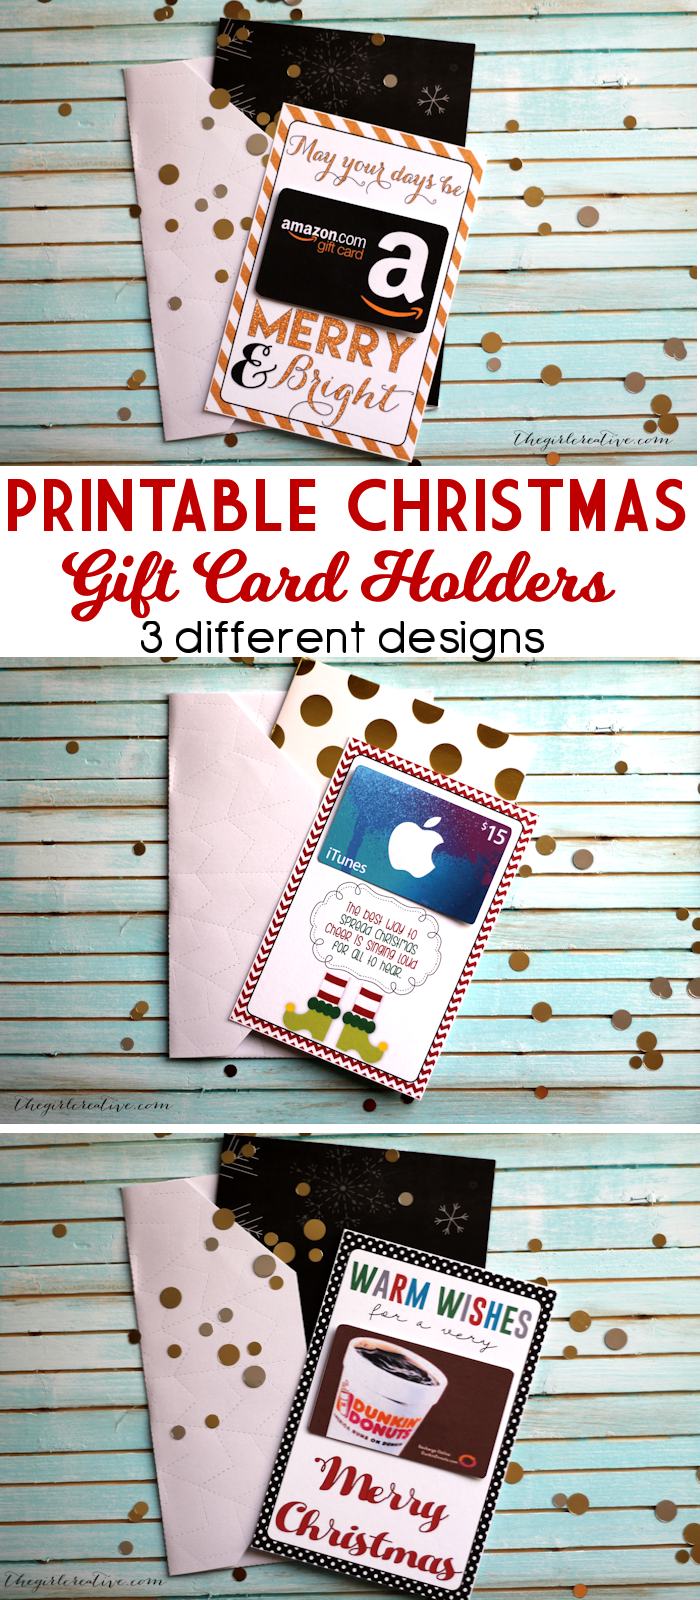 graphic regarding Printable Gifts titled Printable Xmas Reward Card Holders - The Woman Imaginative